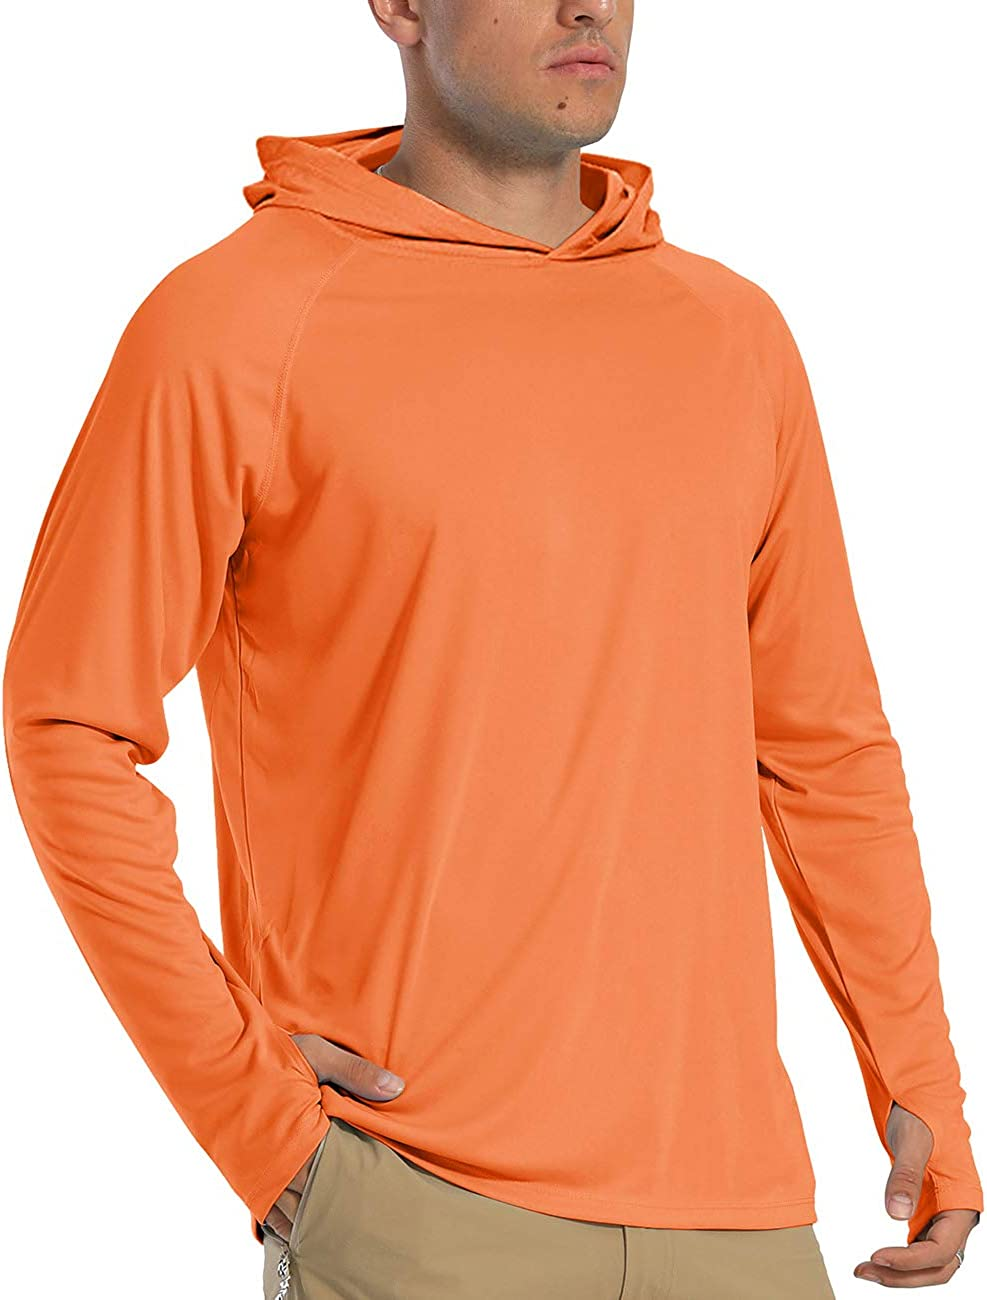 Mens Sun Protection Shirt Long Sleeve with Hoodie UPF 50 Rashguard Outdoor Fishing Shirts